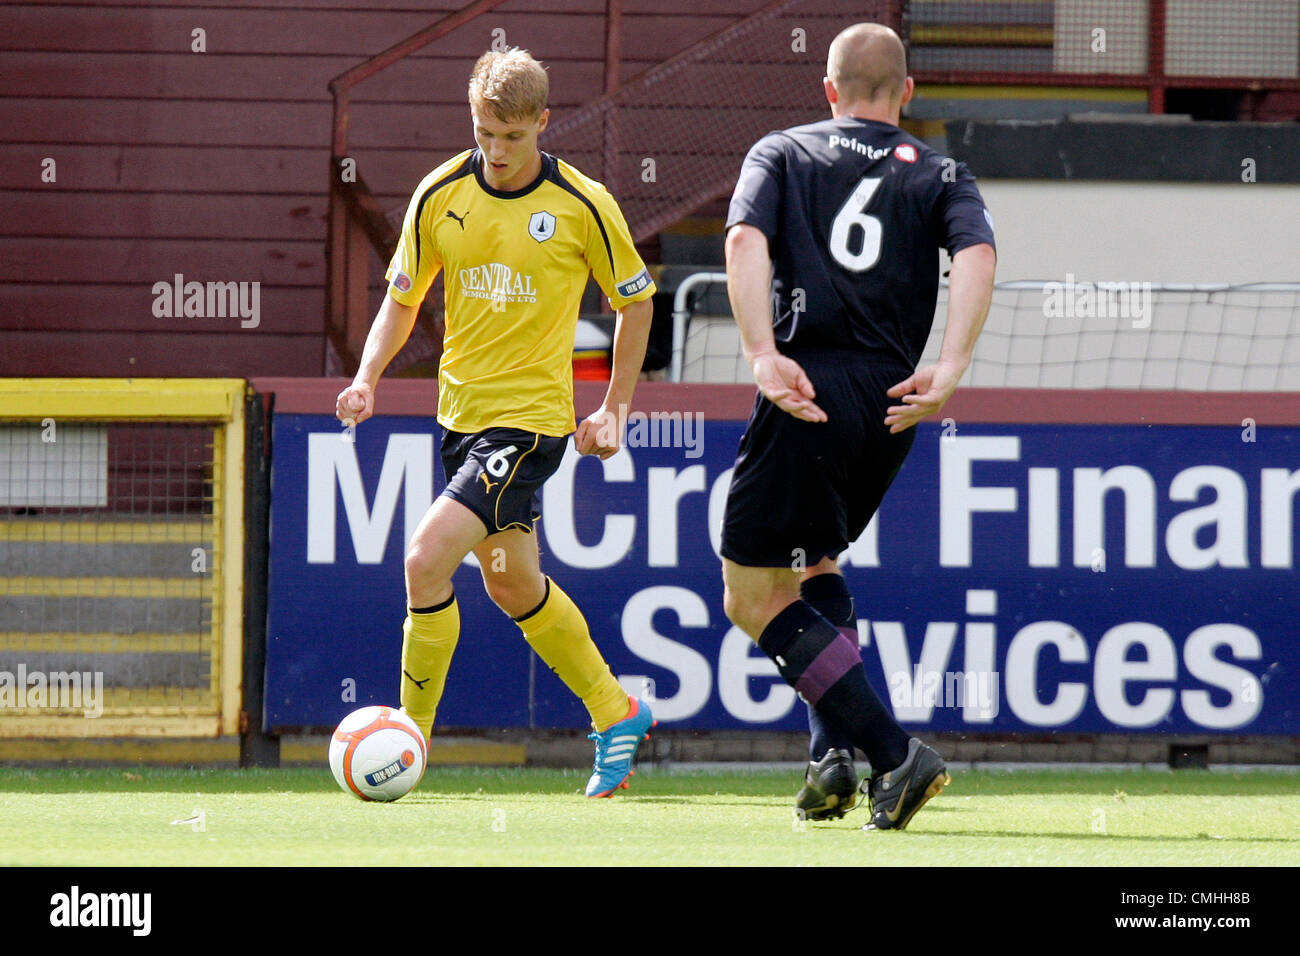 11th Aug 2012. 11.08.2012 Glasgow, Scotland. 6 Jay Fulton in action during the Scottish Football League Division - Stock Image